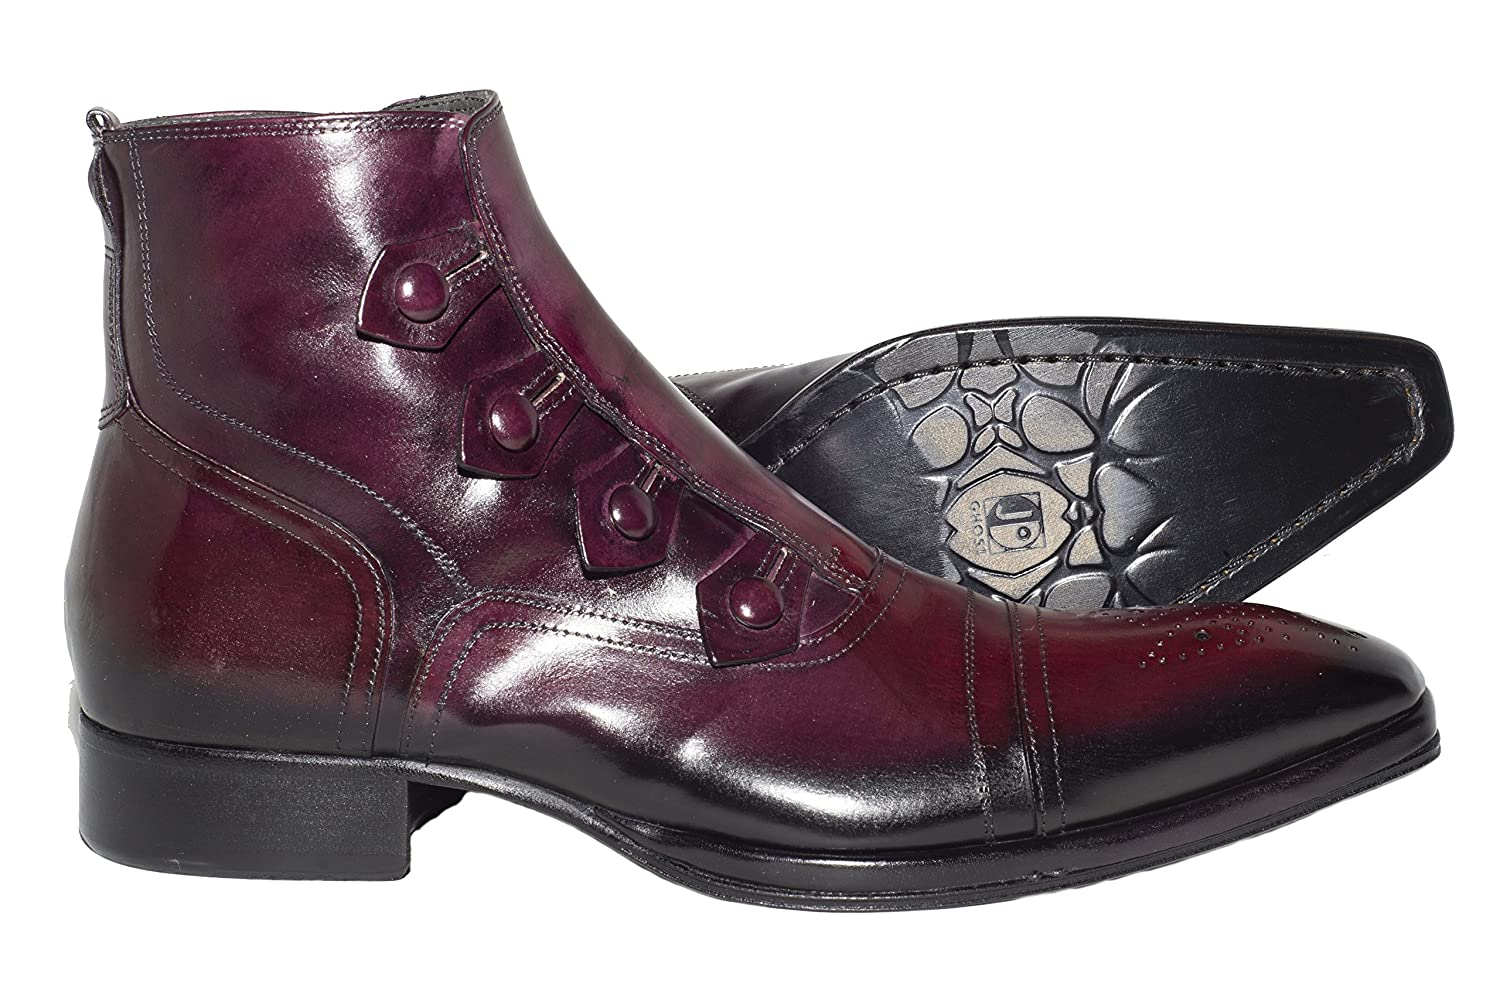 Jo Ghost 802 Italian mens bordo ankle boots with decorative buttons and zipper